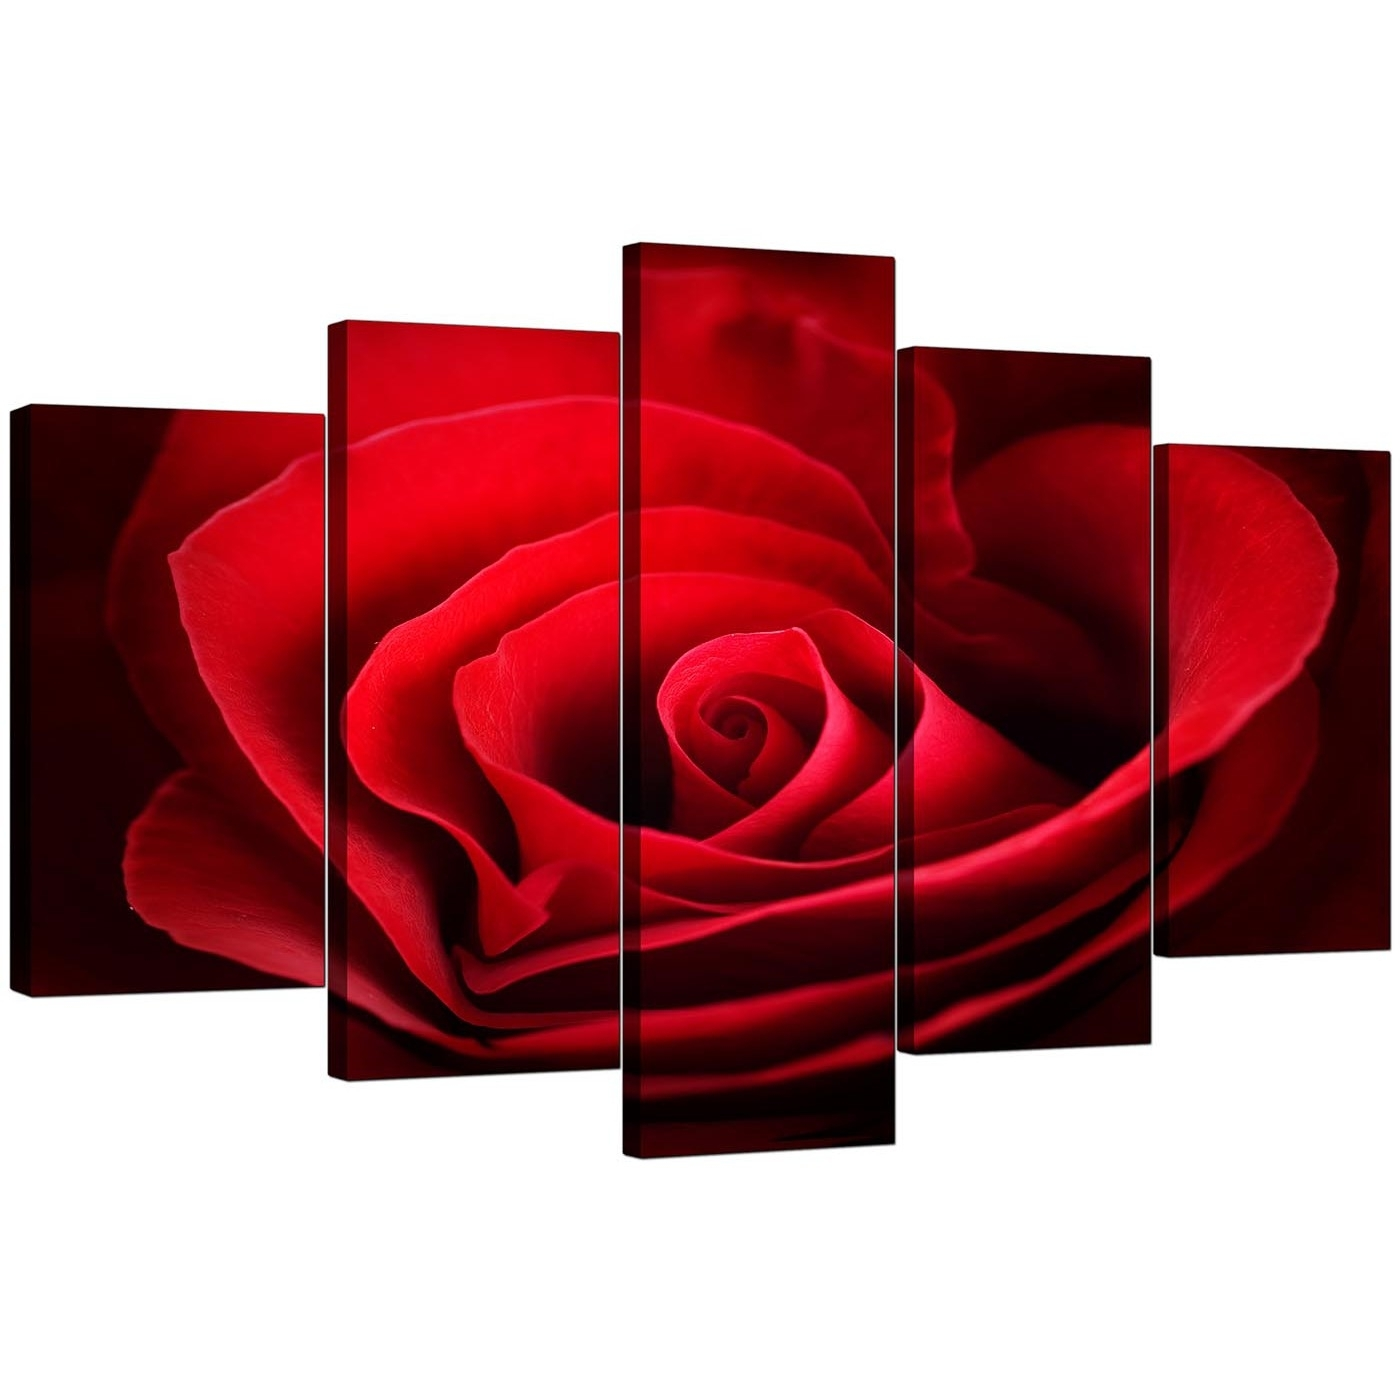 Extra Large Rose Canvas Wall Art 5 Panel In Red Throughout Most Popular Red Wall Art (View 3 of 15)